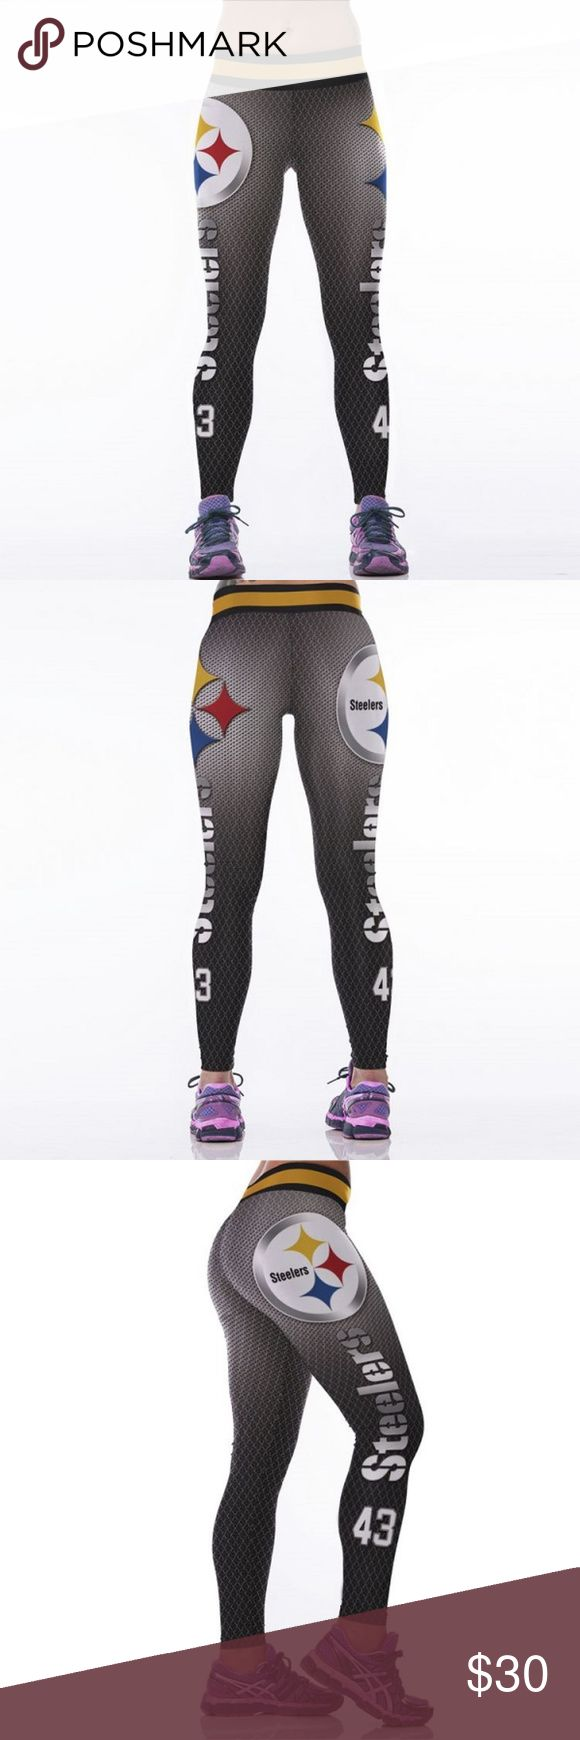 Pittsburgh Steelers NFL Leggings Yoga Pants Root for your favorite team in these high quality NFL leggings! Perfect wardrobe addition while watching Sunday football games. The vivid colors and designs are sure to turn heads! Get a pair now while they last to show your team support every week as they inch their way to the glorious Super Bowl Condition: Brand New in Packaging Material: Spandex / Polyester Measurements:  (Length / Waist / Hip) S/M: 36 / 27.5-37 / 33-41.5 L/XL: 36.5 / 30–39.5…